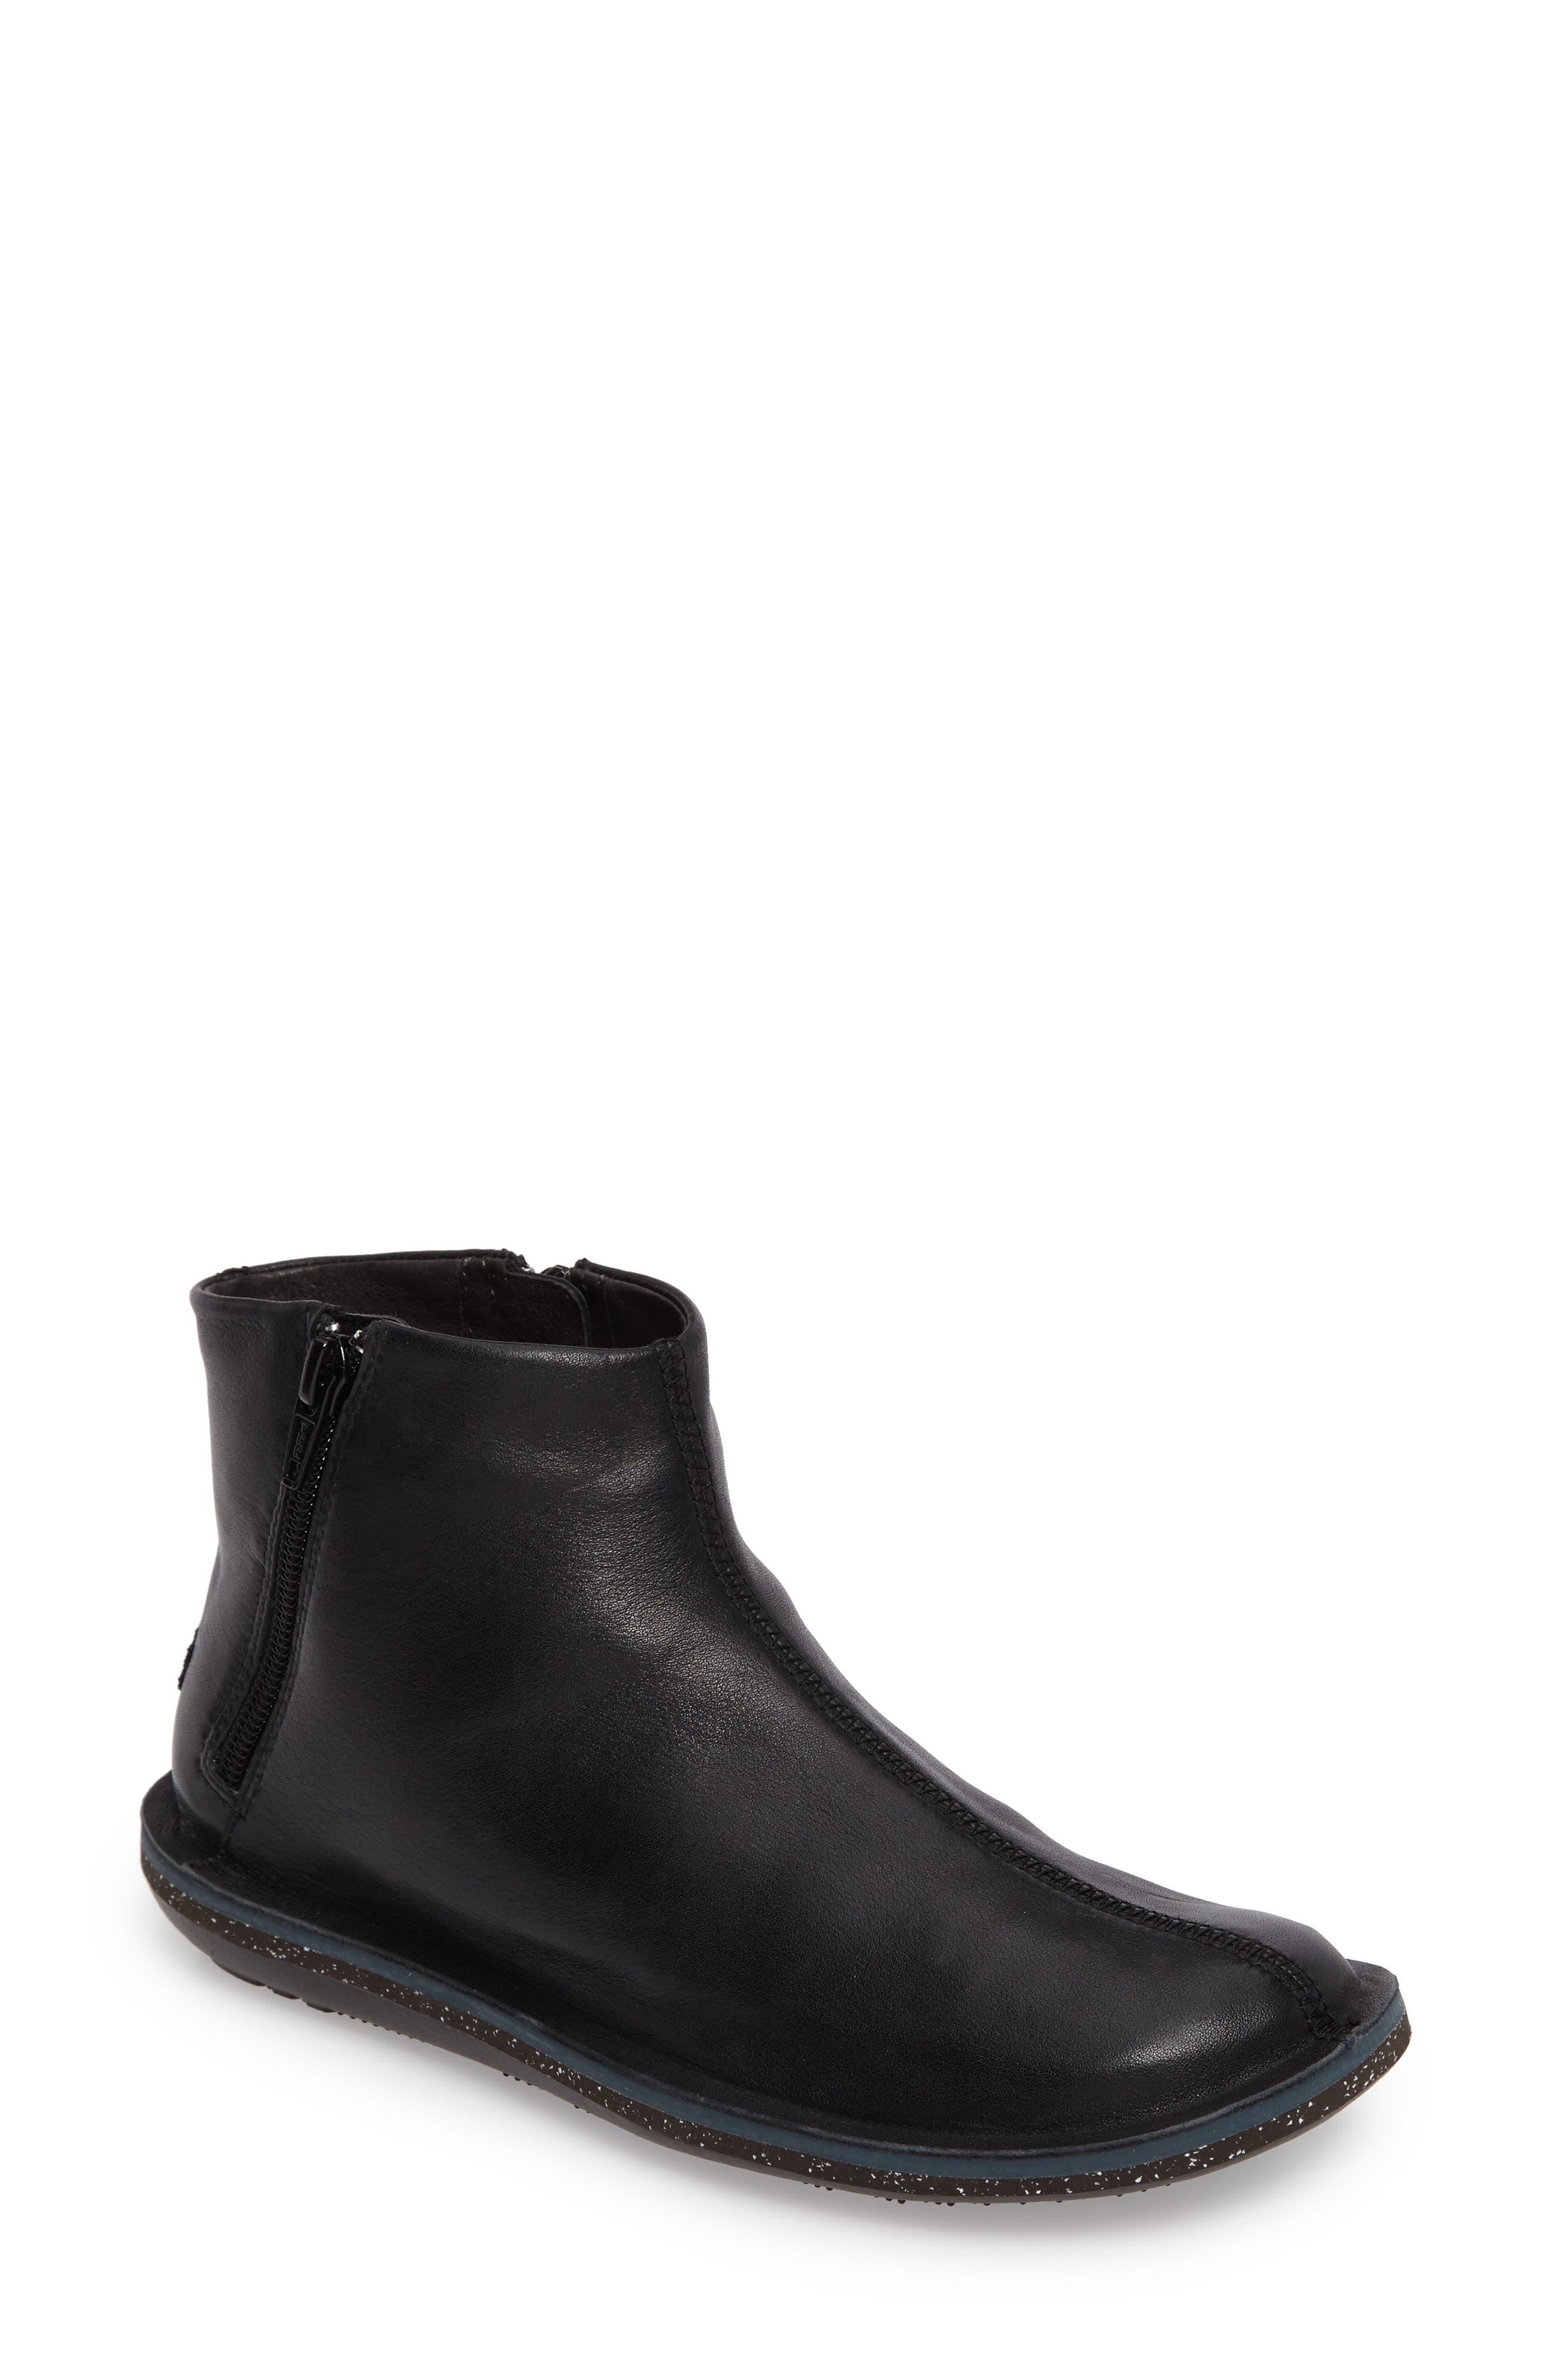 'Beetle' Ankle Bootie,                             Main thumbnail 1, color,                             Black Leather